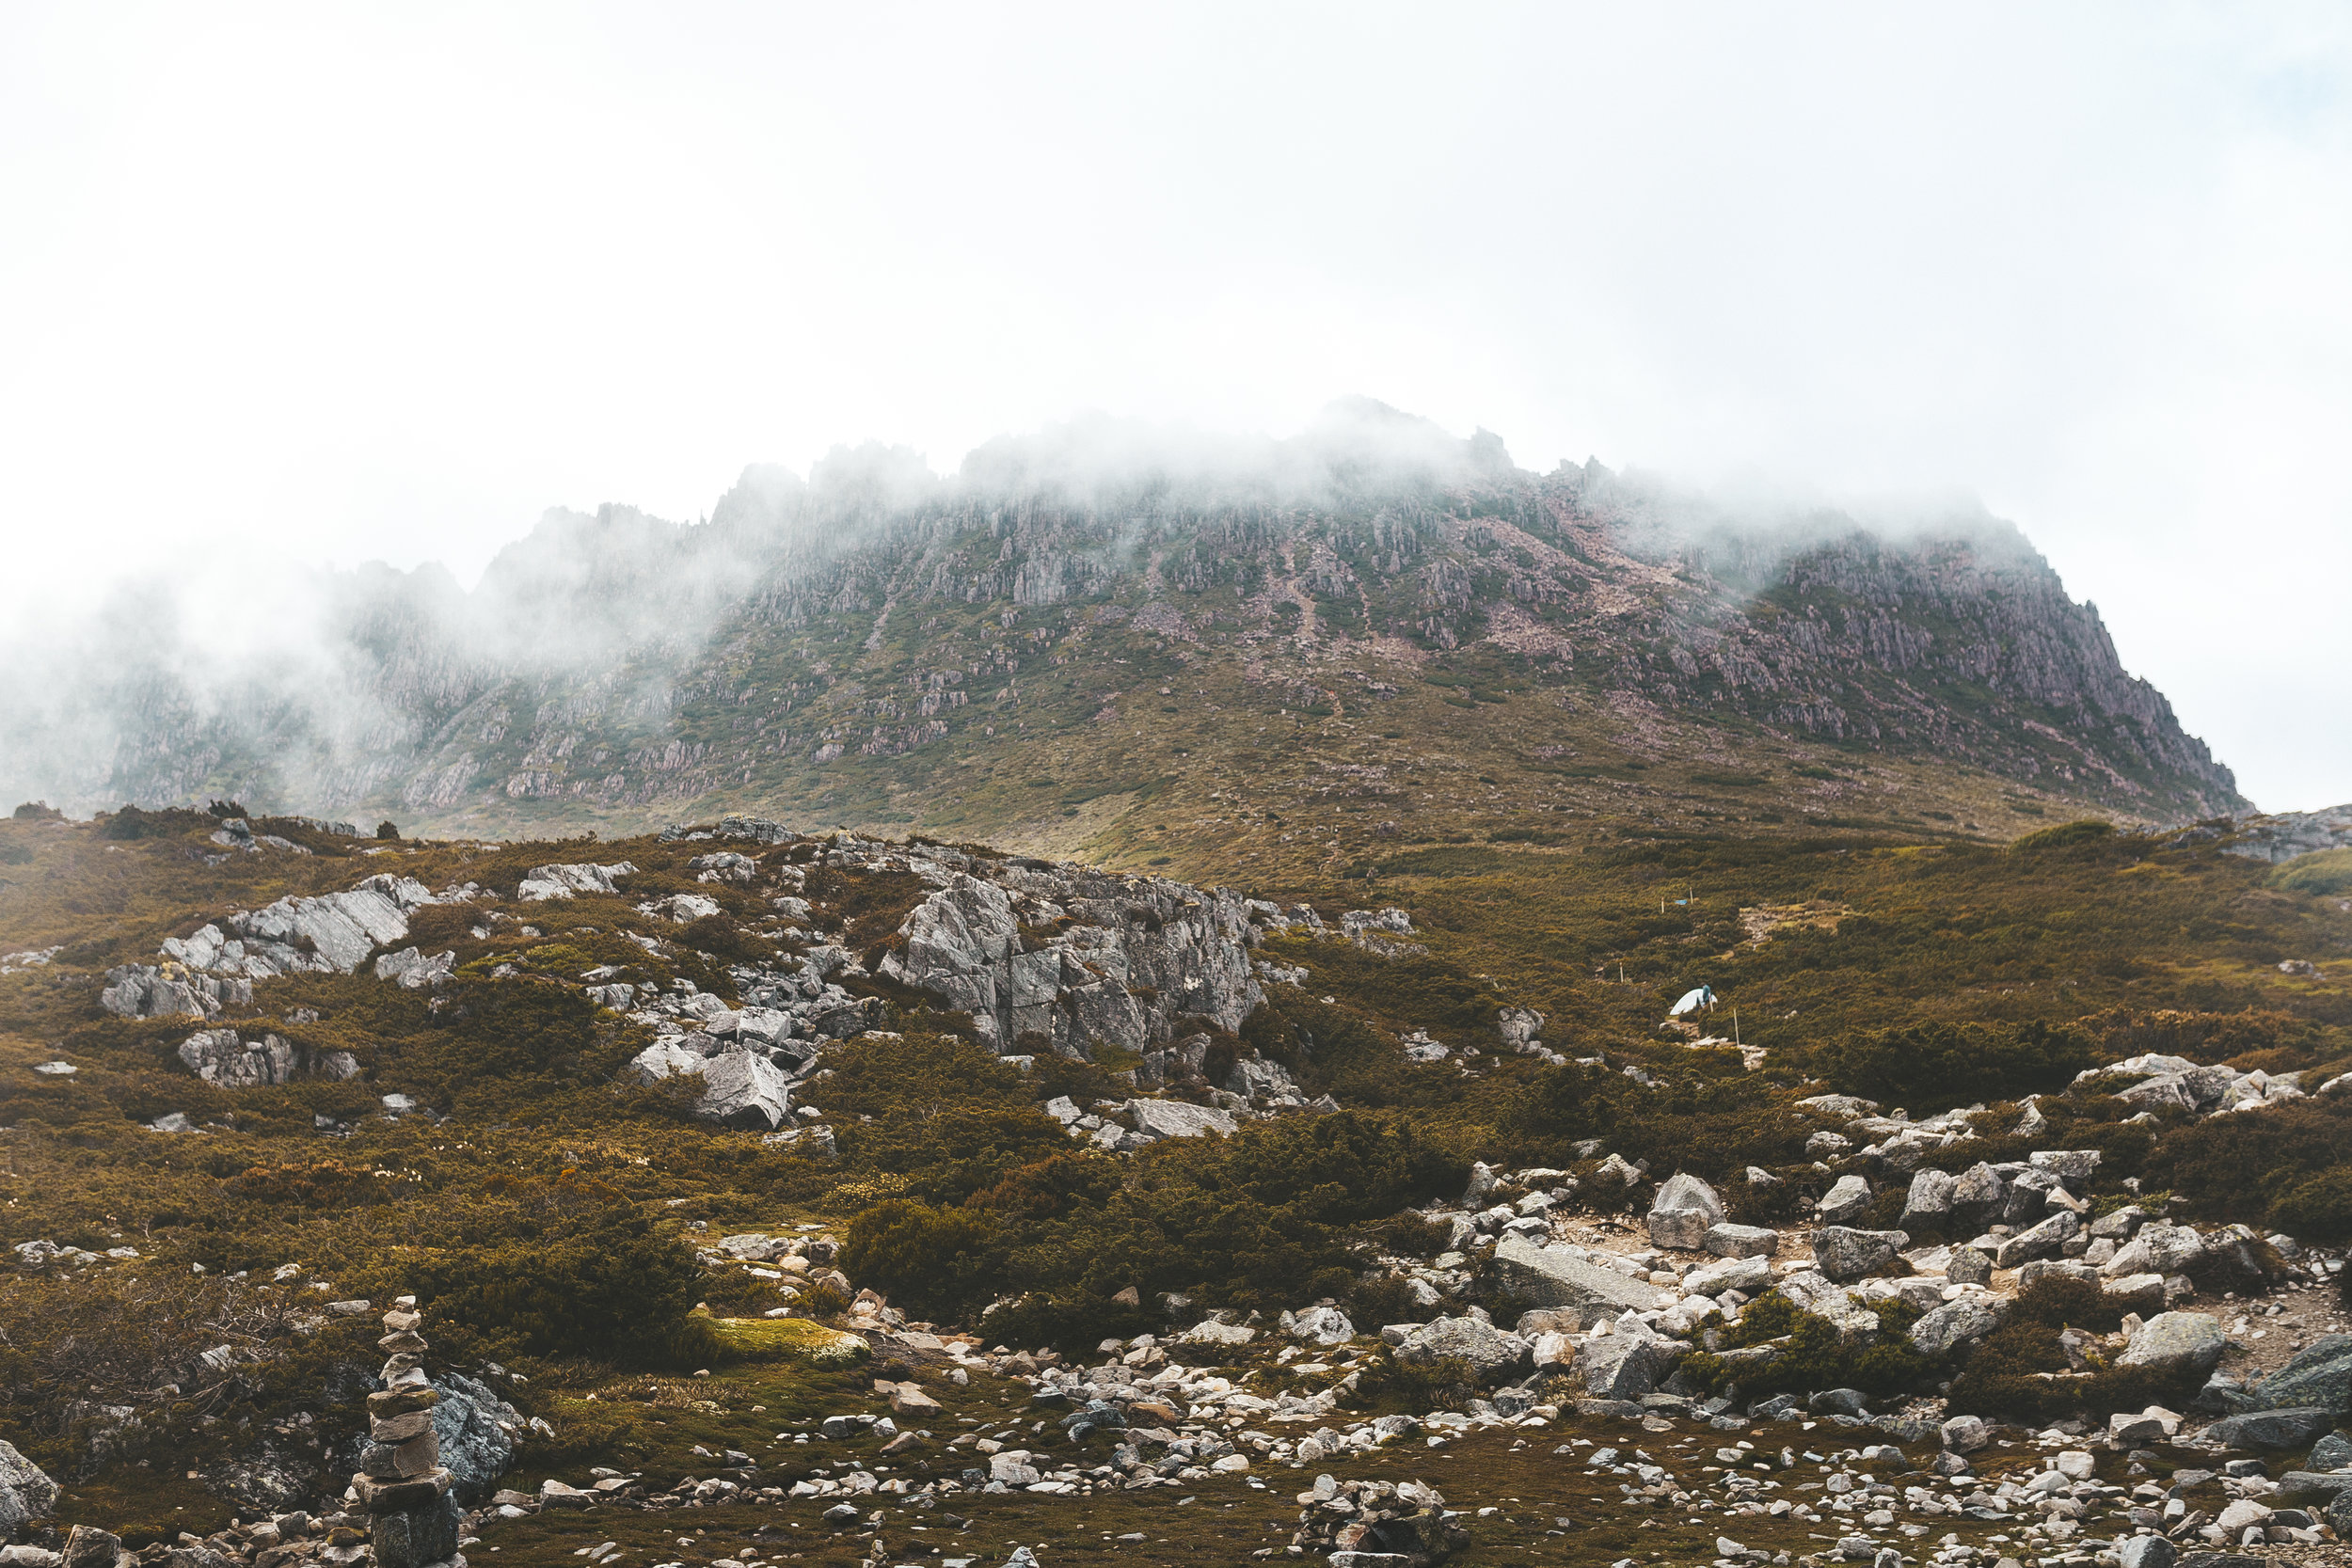 The view of Cradle Mountain from the Kitchen Hut BEFORE the clouds cleared